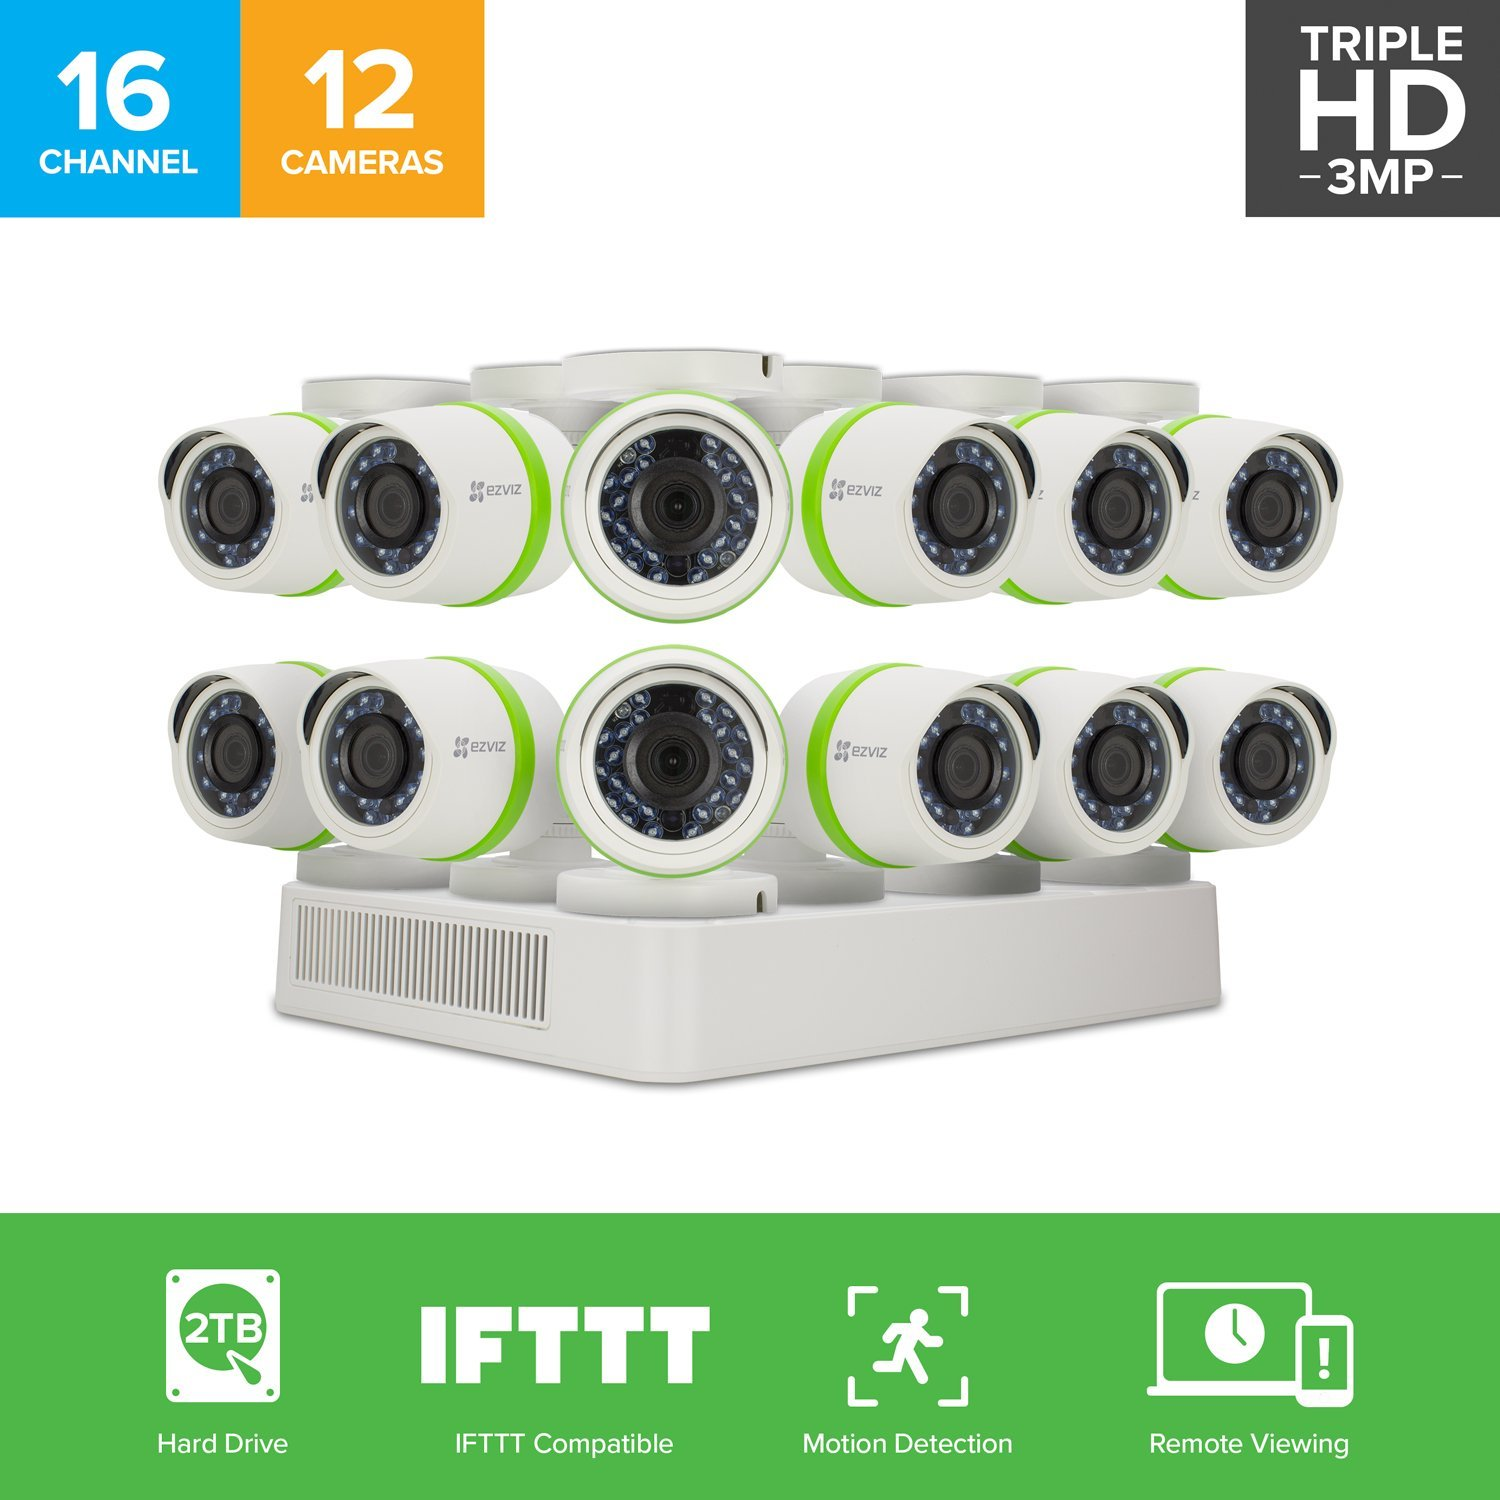 EZVIZ 3MP OutdoorSecurity Camera System, 12 HD Weatherproof Cameras, 16 Channels with 2TB DVR